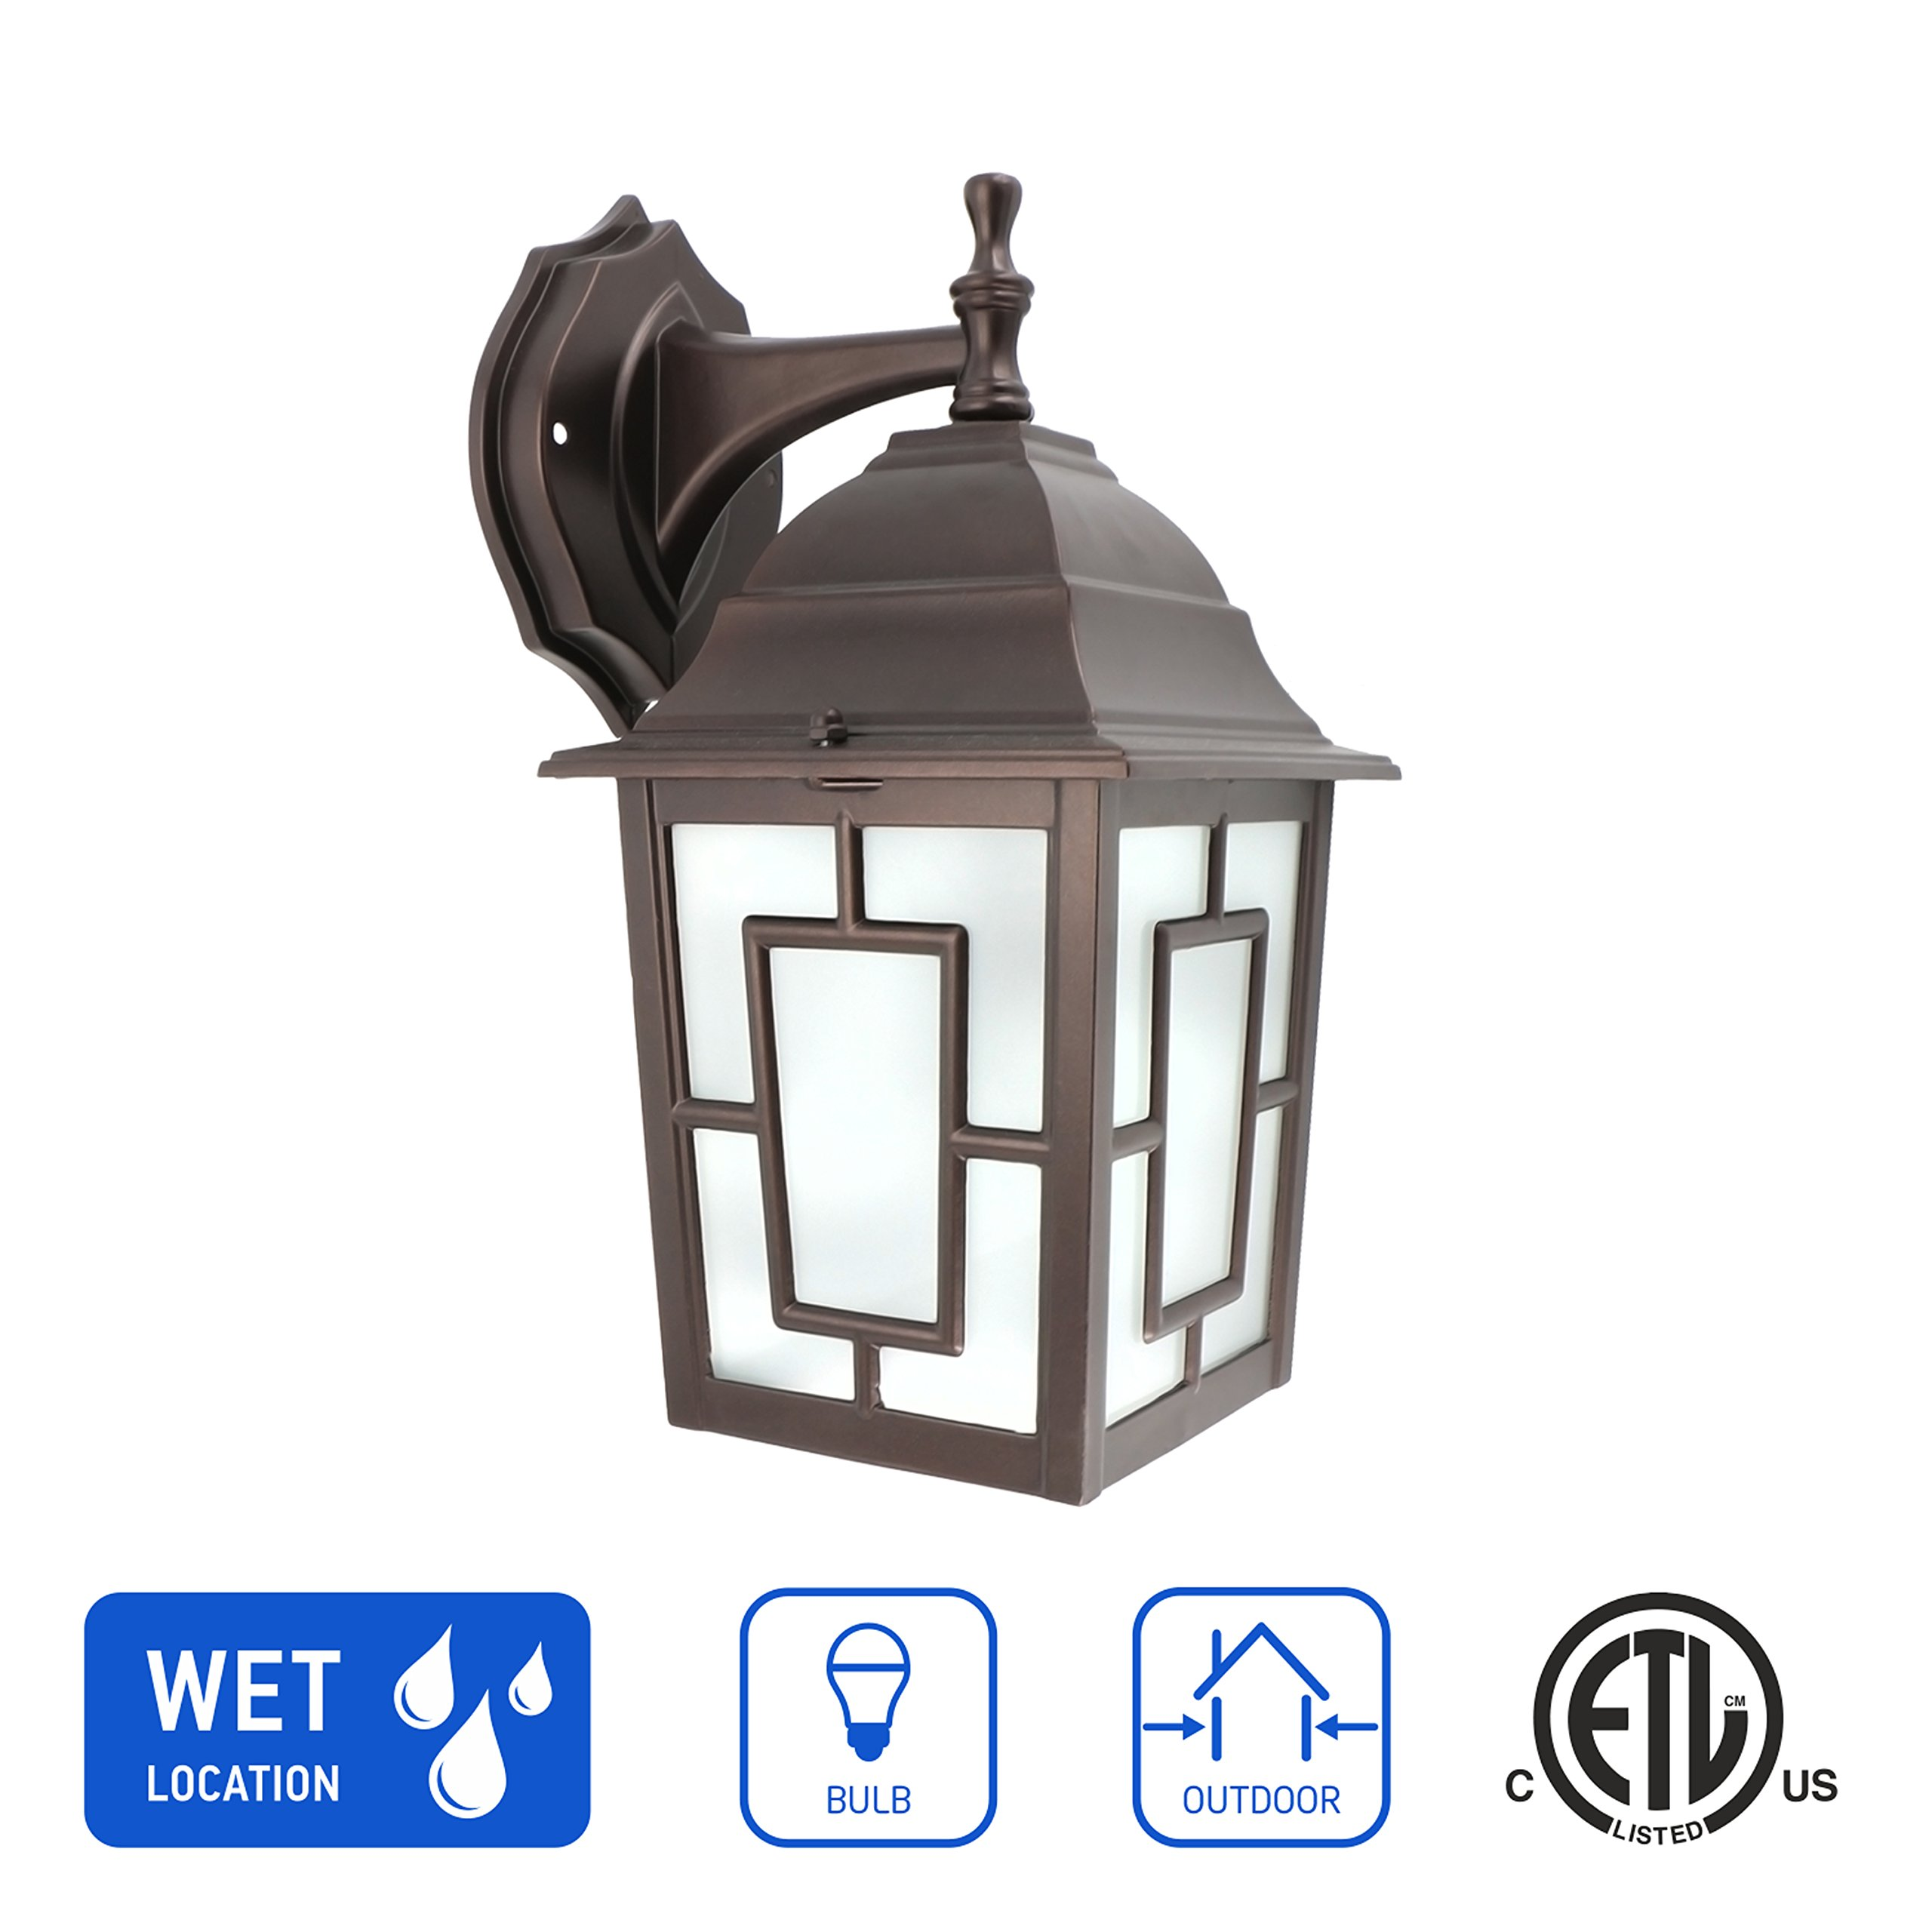 in Home 1-Light Outdoor Wall Mount Lantern Downward Fixture L05 Series Traditional Design Bronze Finish, Frosted Glass Shade, ETL Listed